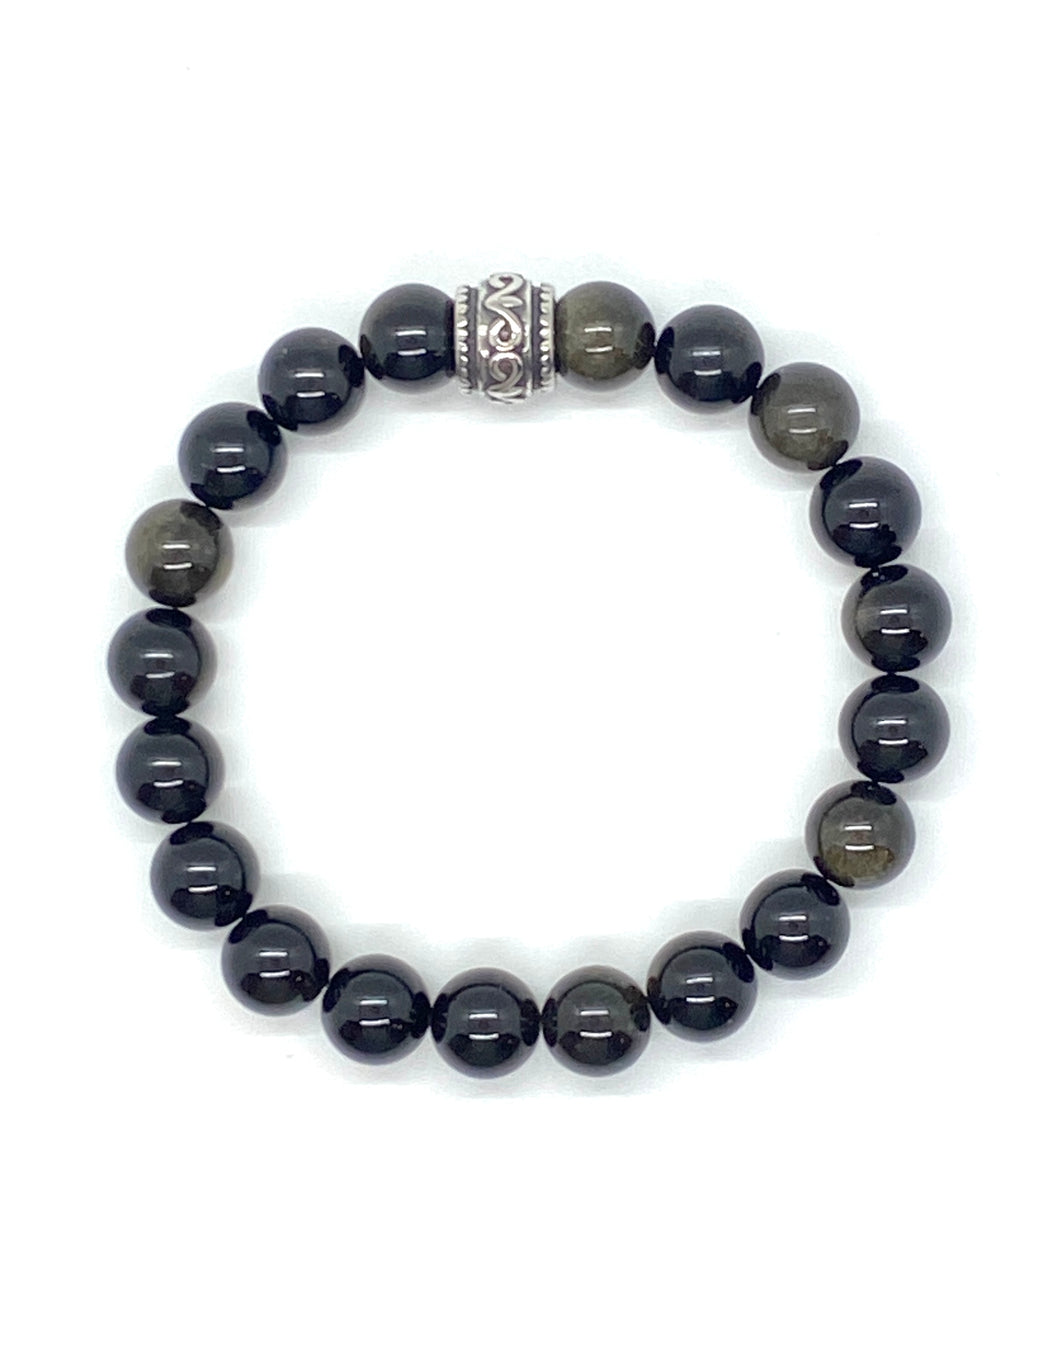 Silver Obsidian Gemstone bracelet with Stainless Steel Accent